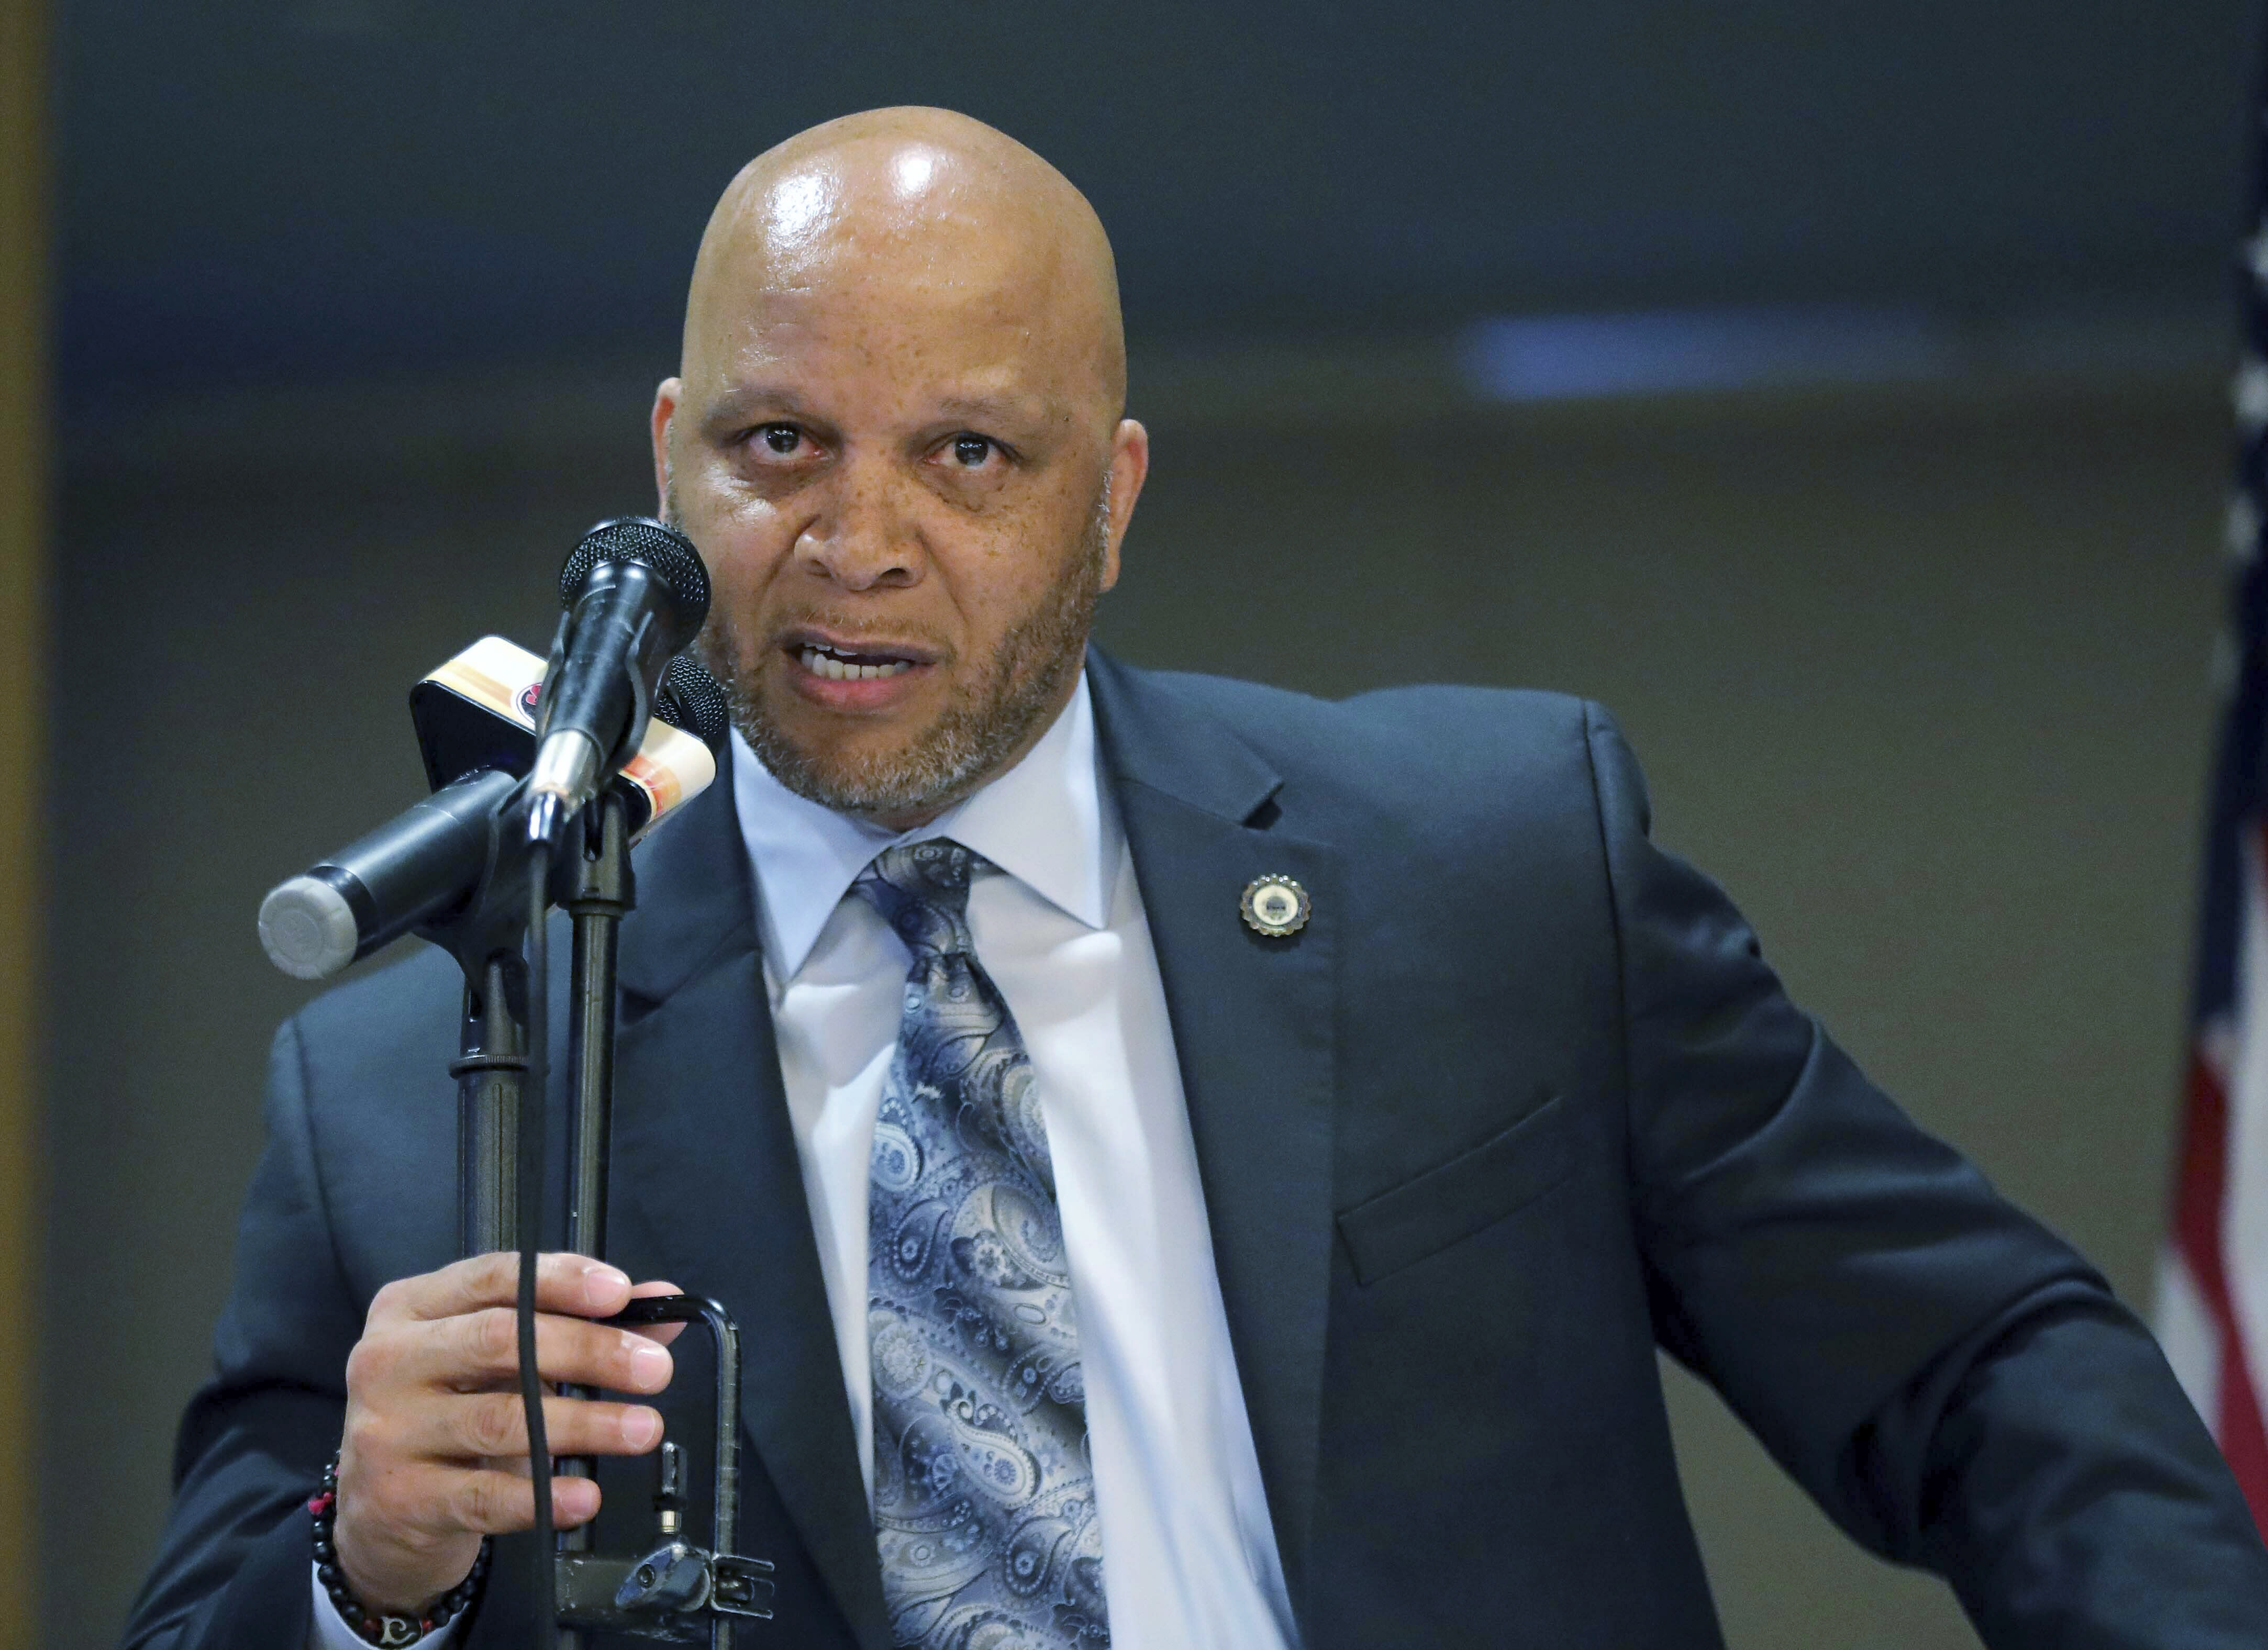 FILE - In an April 23, 2019 file photo, Atlantic City Mayor Frank Gilliam Jr. speaks at the Atlantic City Implementation Plan. Gilliam Jr. has resigned, Thursday, Oct. 3, 2019, after pleading guilty to defrauding a youth basketball club out of $87,000. (Craig Matthews/The Press of Atlantic City via AP, File)